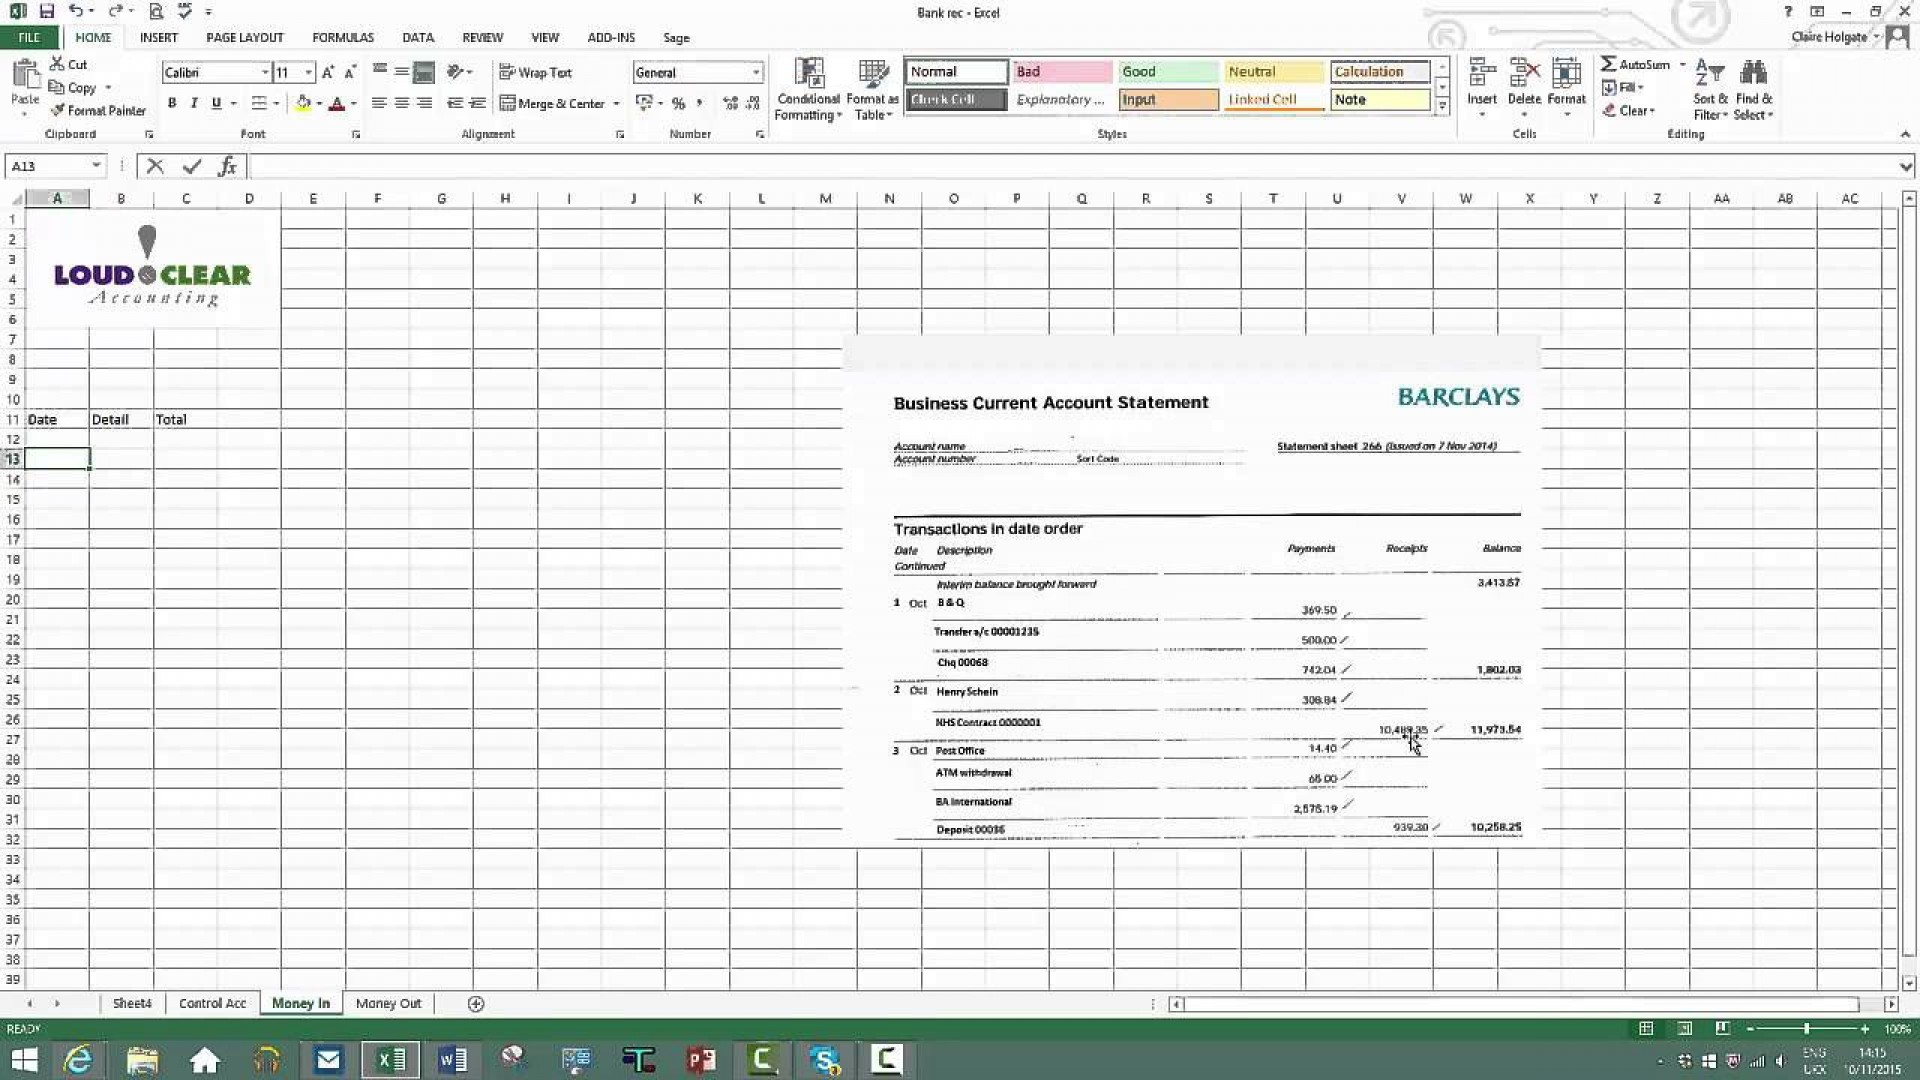 009 Unique Bank Reconciliation Statement Format Excel Sheet Design  Download1920